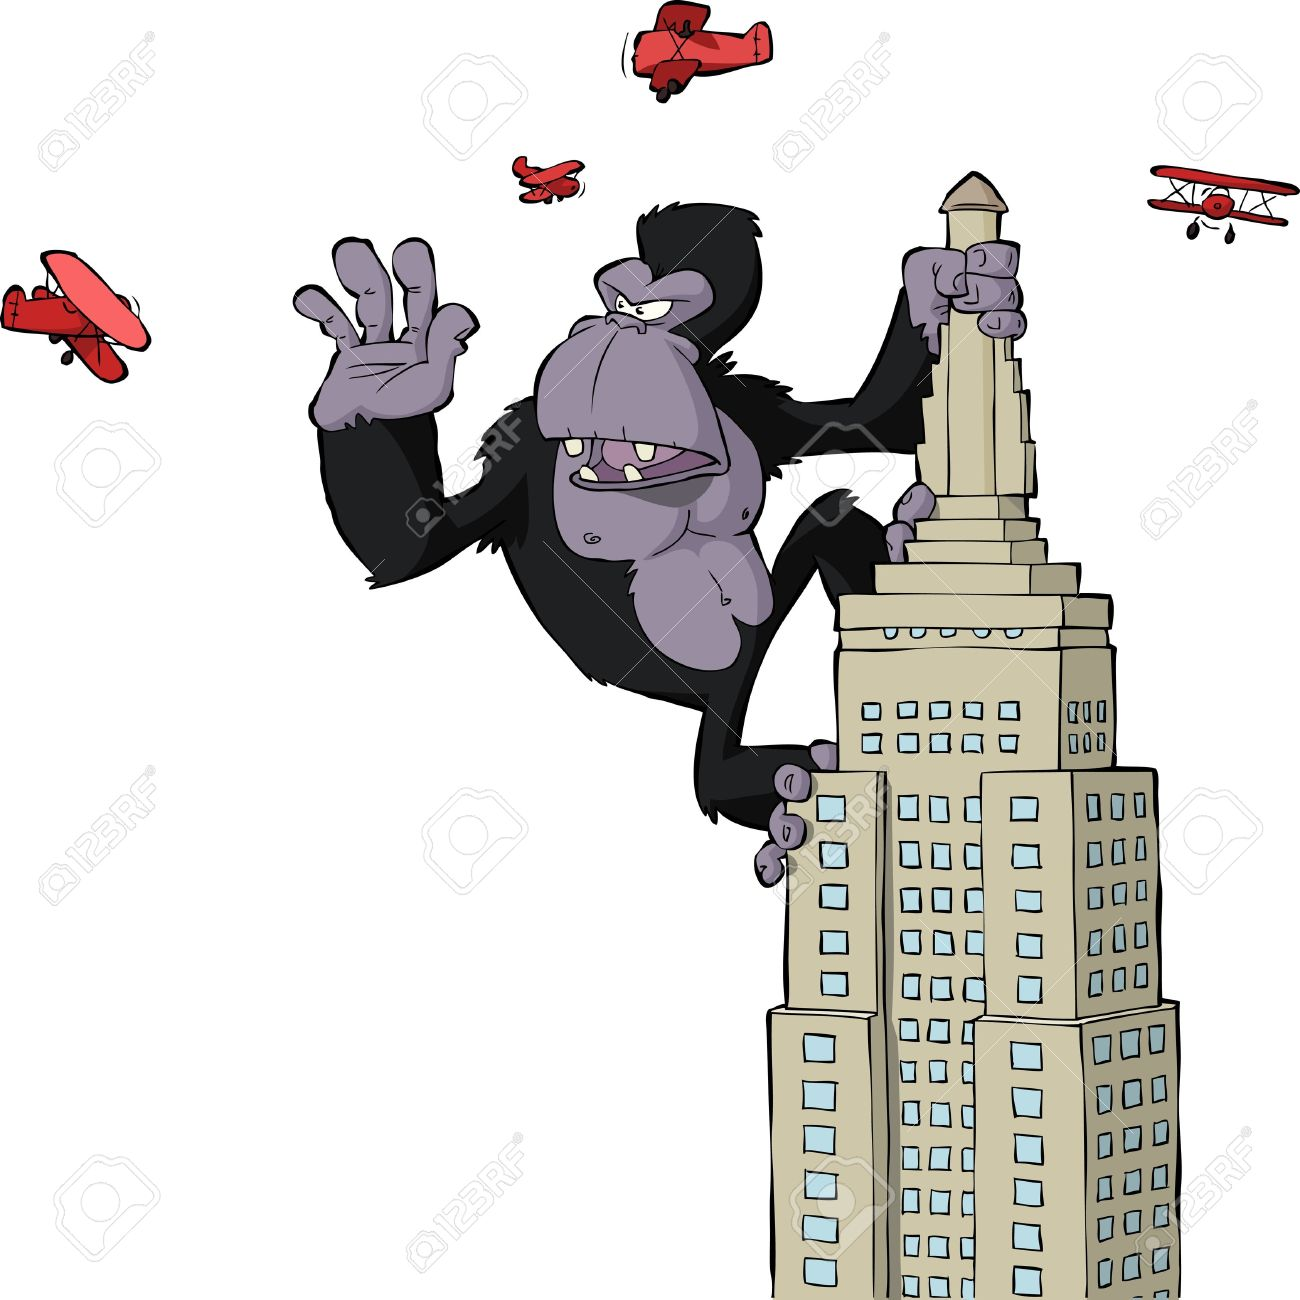 664 King Kong Stock Illustrations, Cliparts And Royalty Free King.